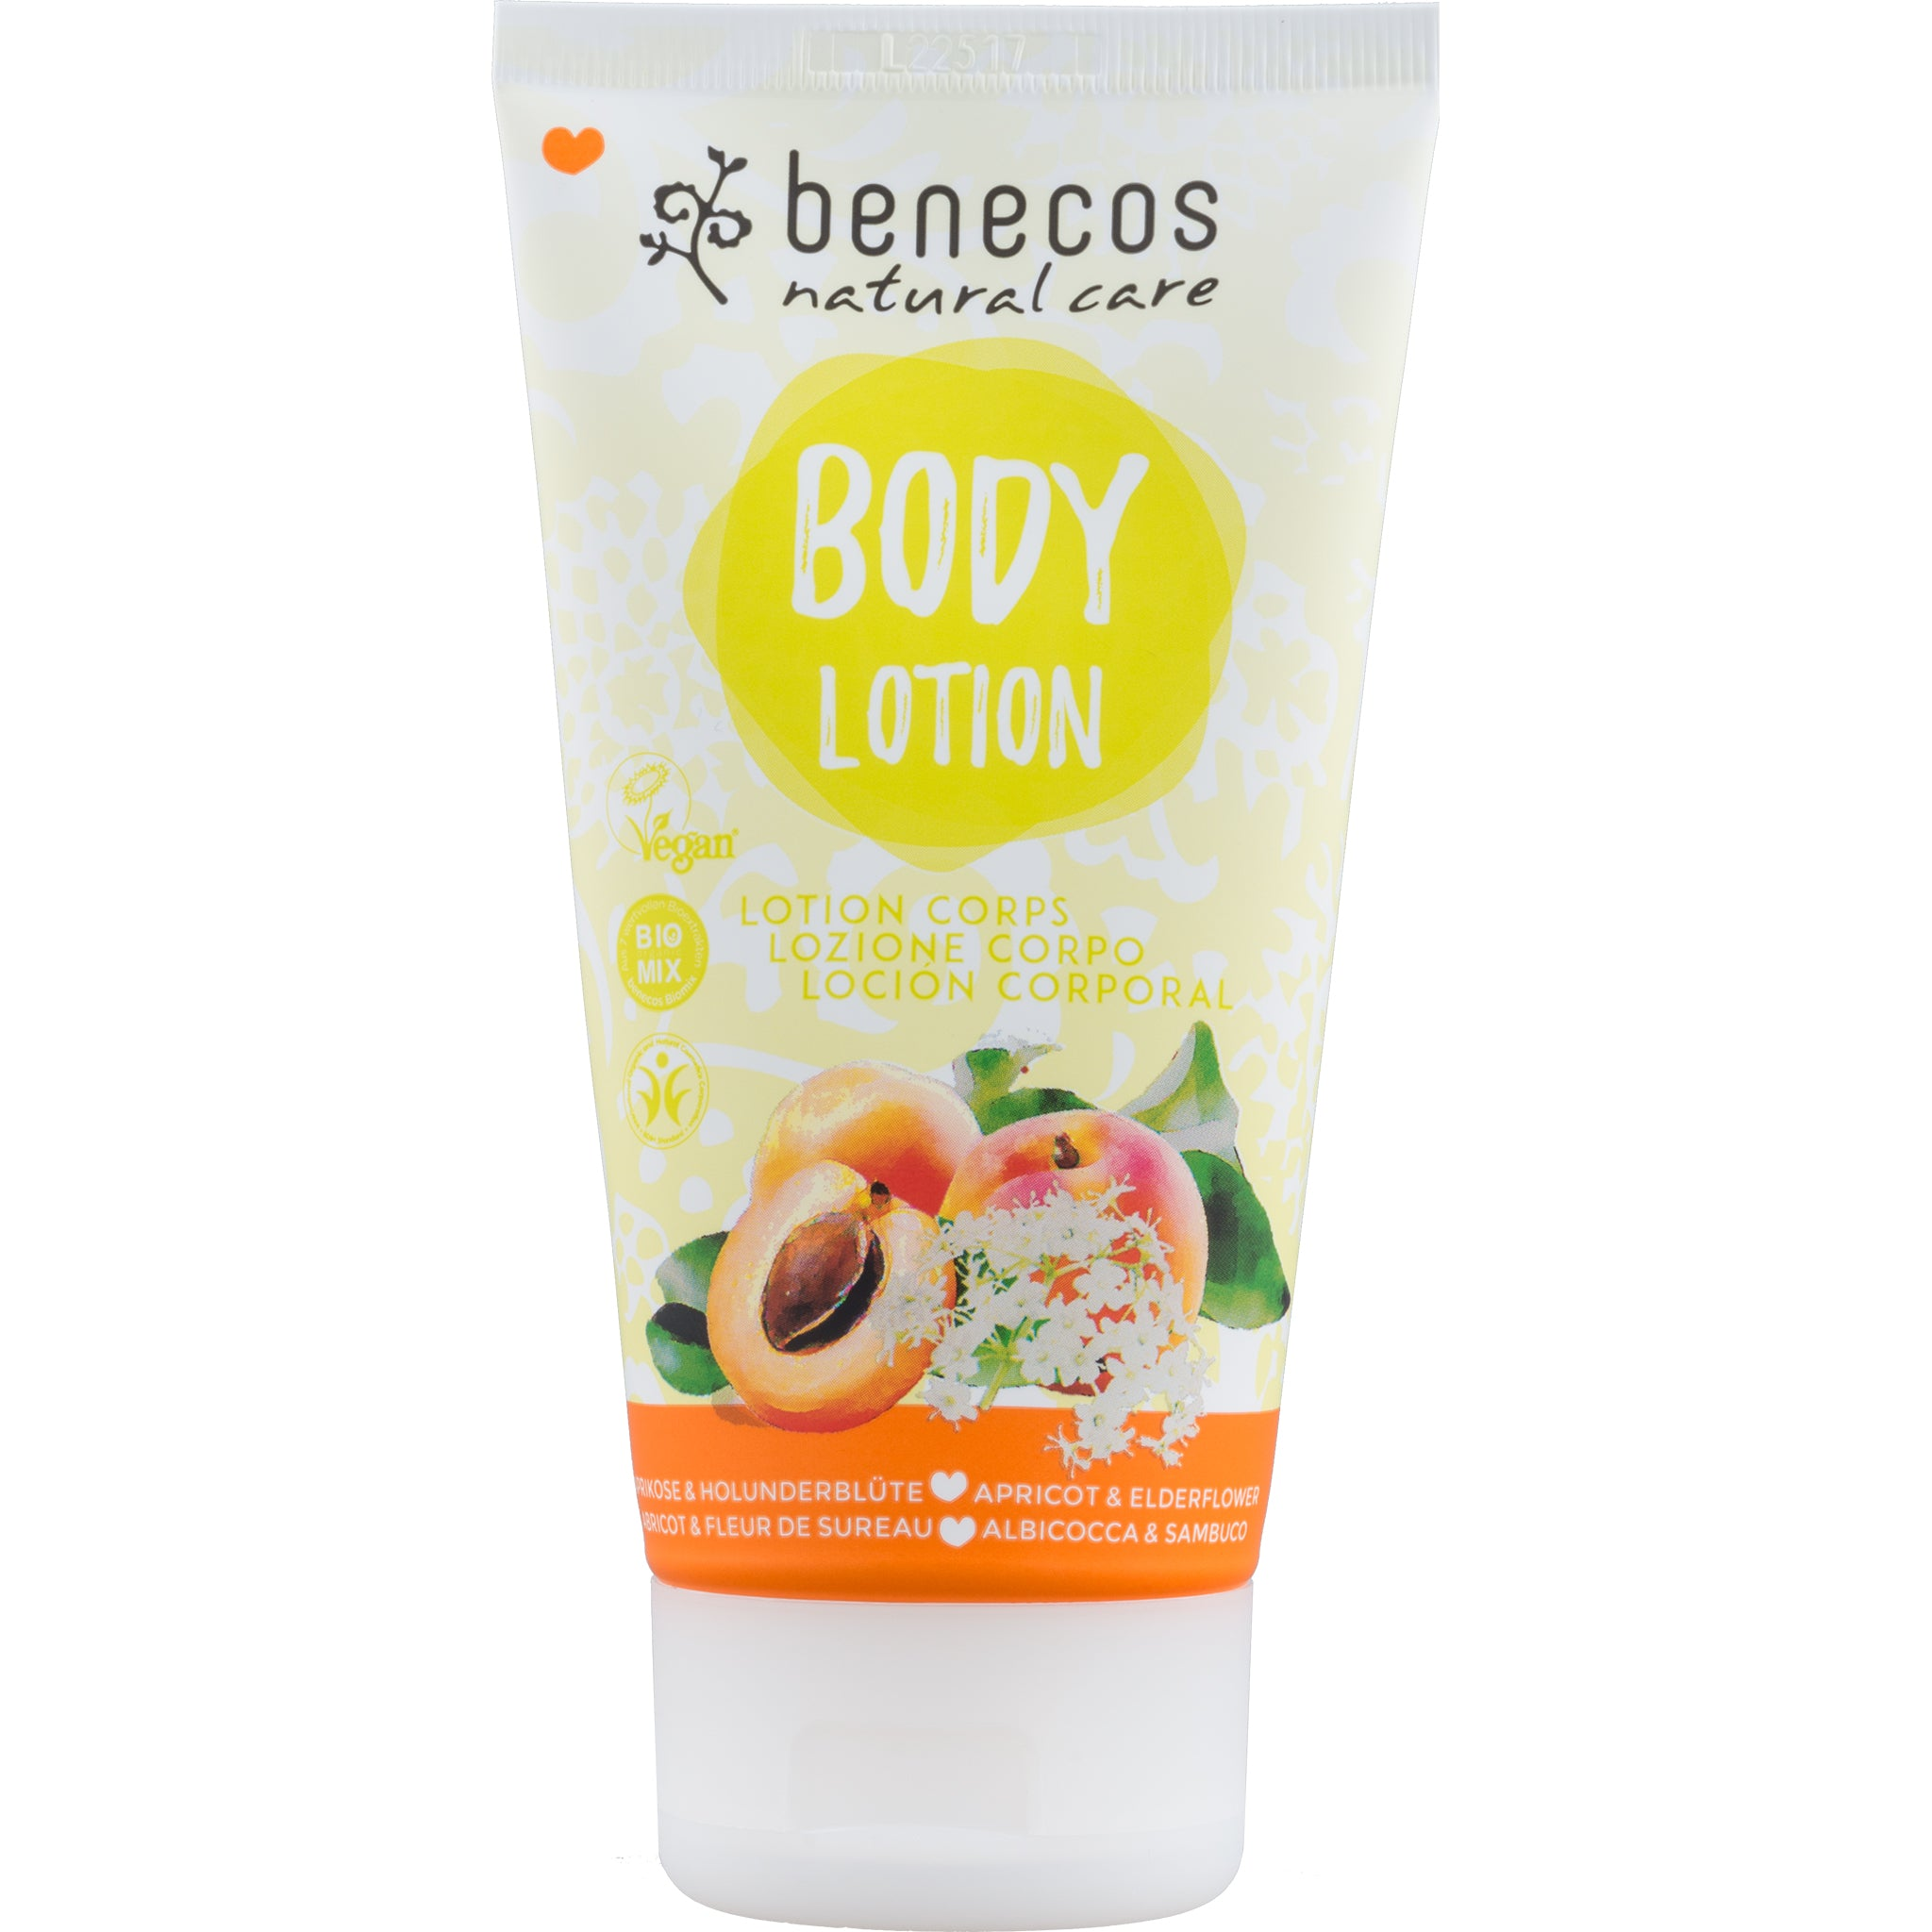 Natural Body Lotion - Apricot & Elderflower